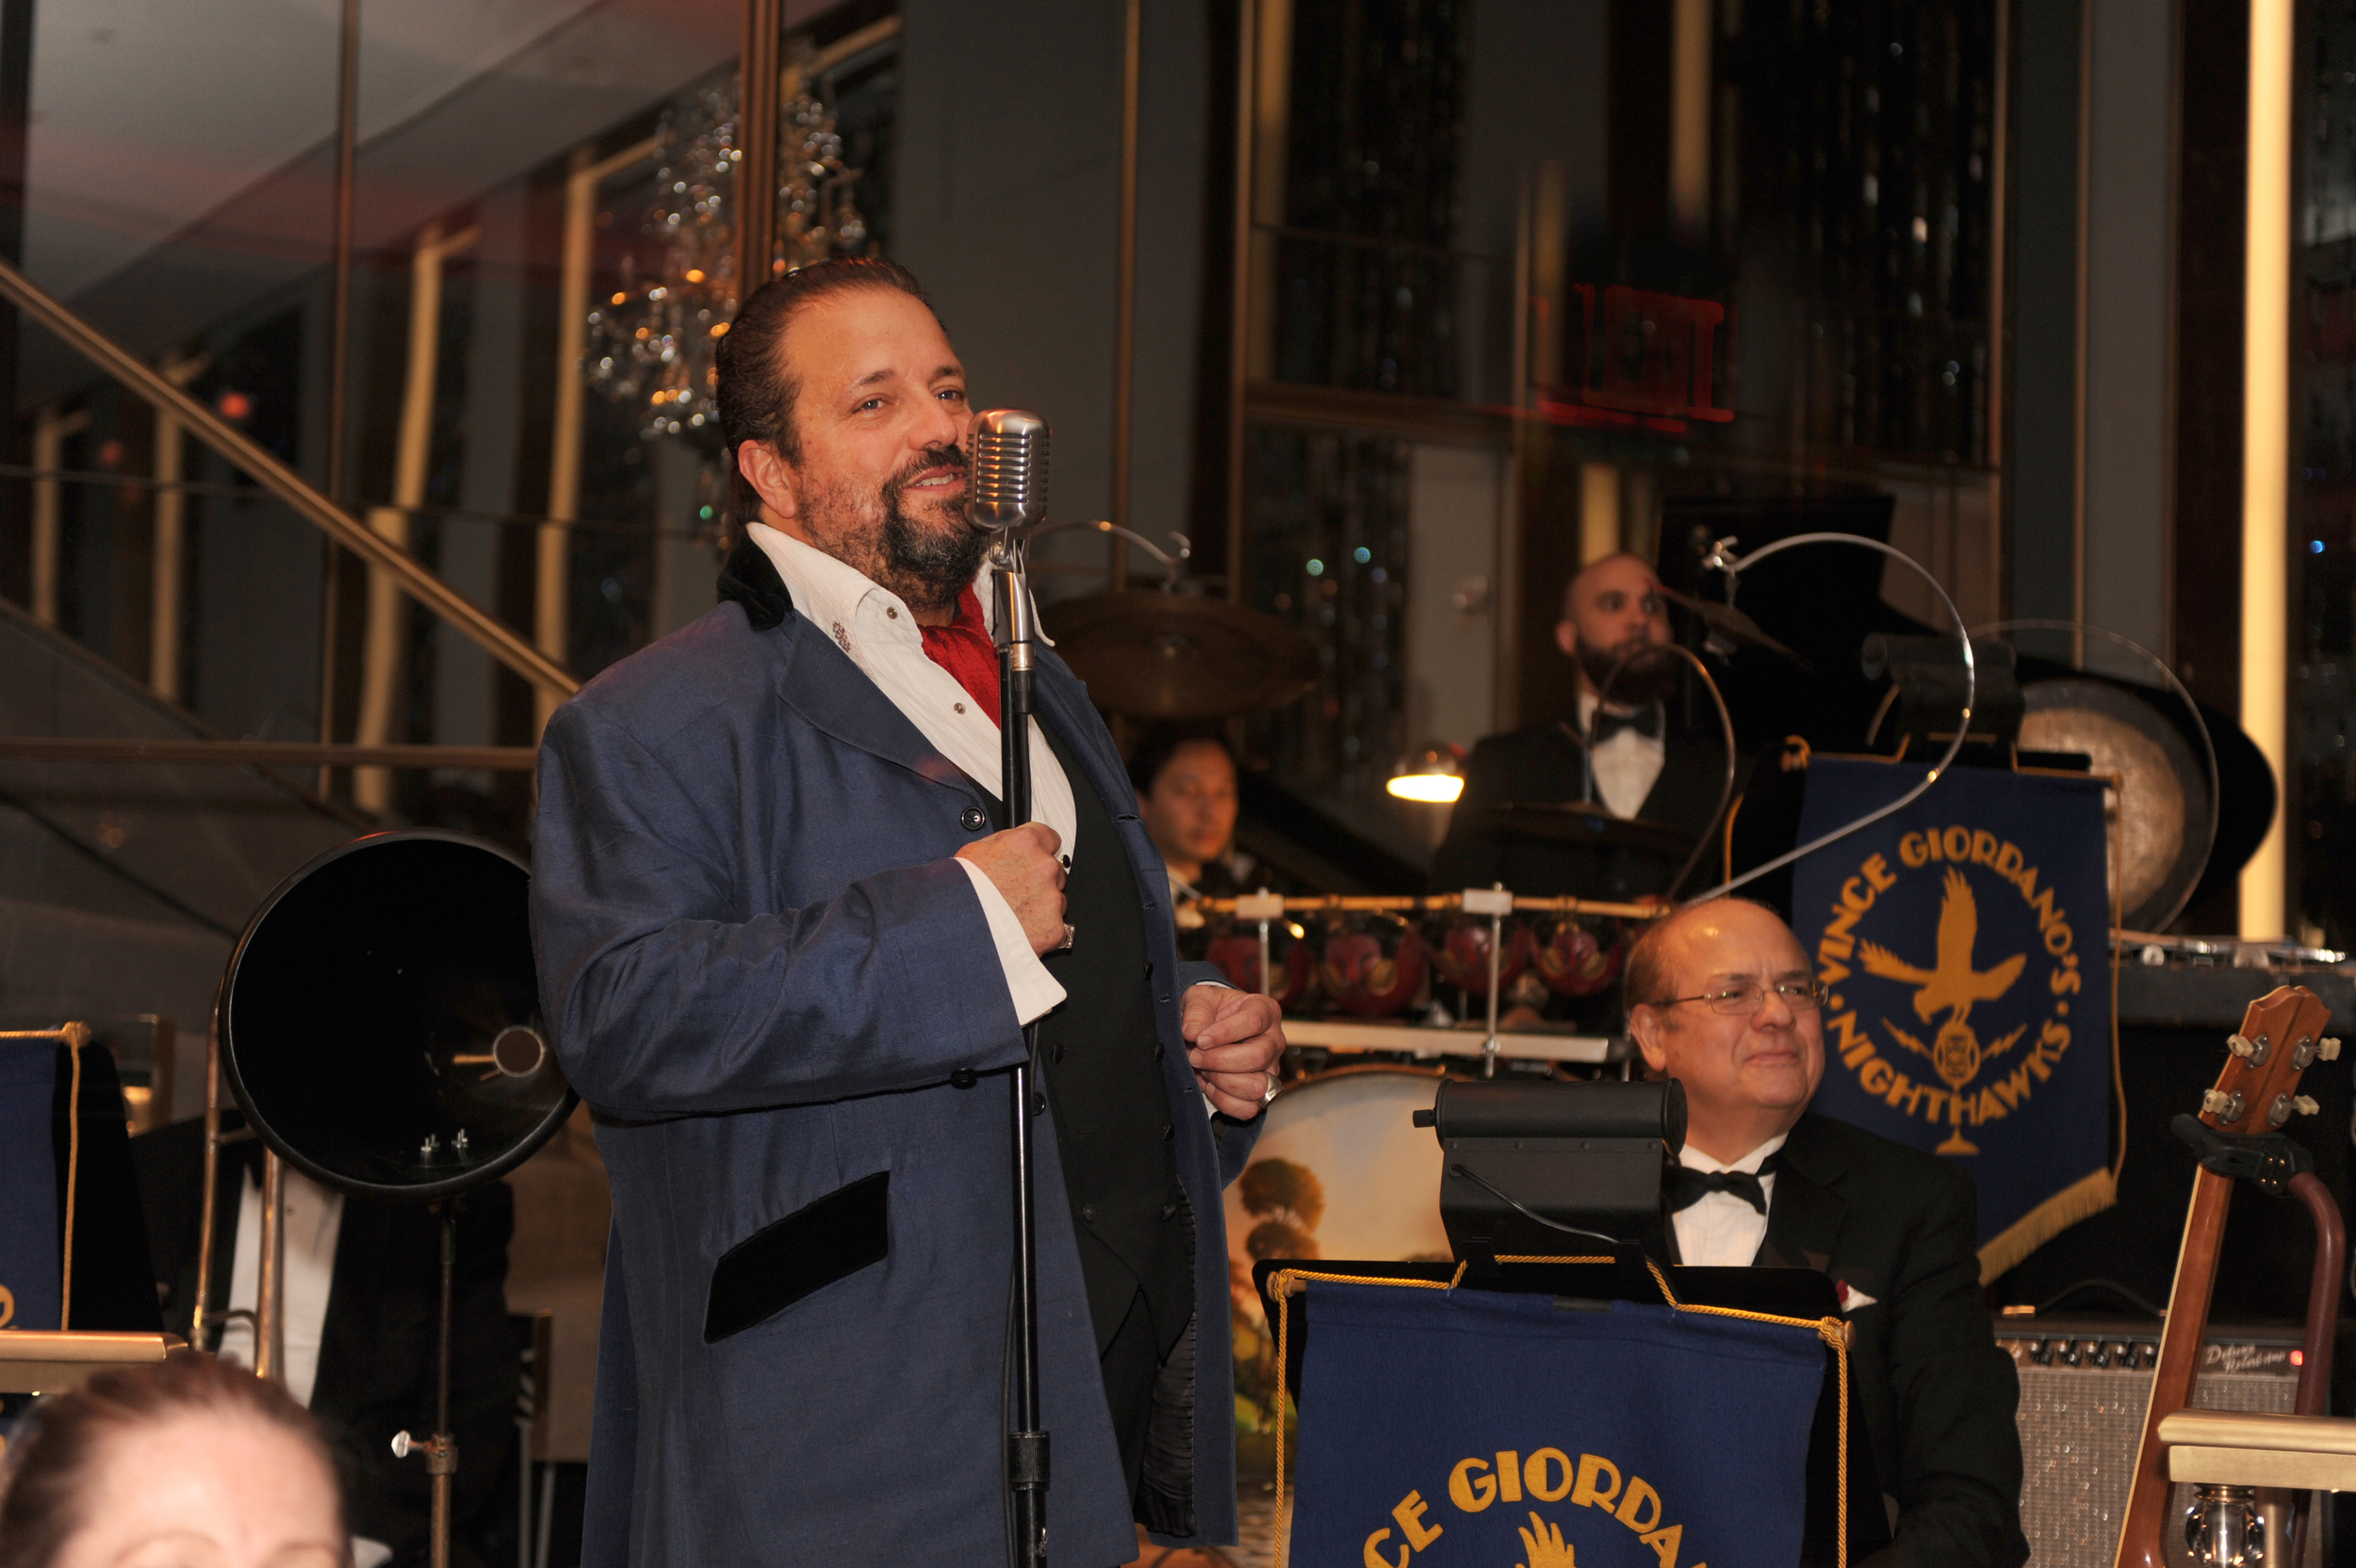 Raul performing at The Rainbow Room